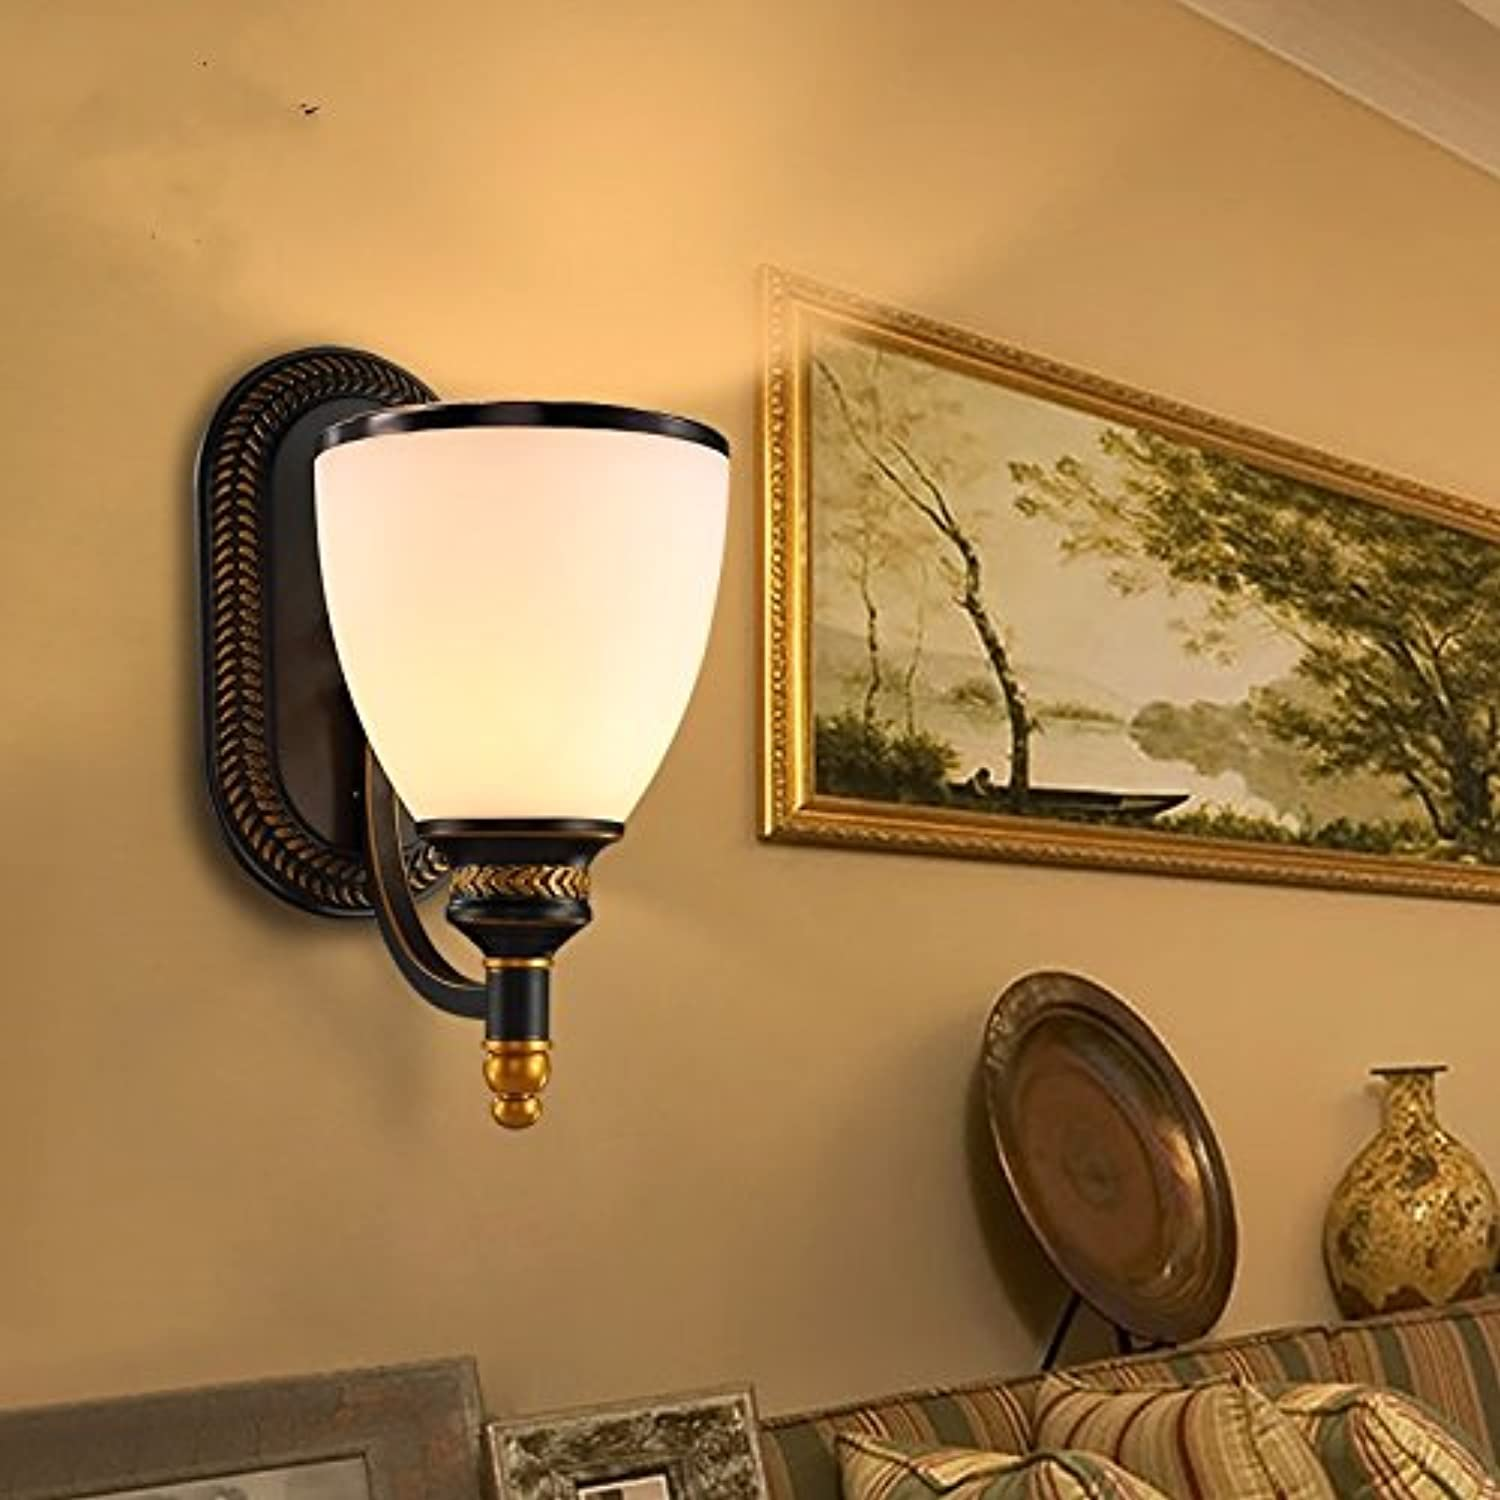 GaoHX Light American-Style Wall Lamp Bedside Lamp Bedroom Aisle Lights The Staircase Corridor Minimalist Retro Decoration-Wall Lighting,Single Head